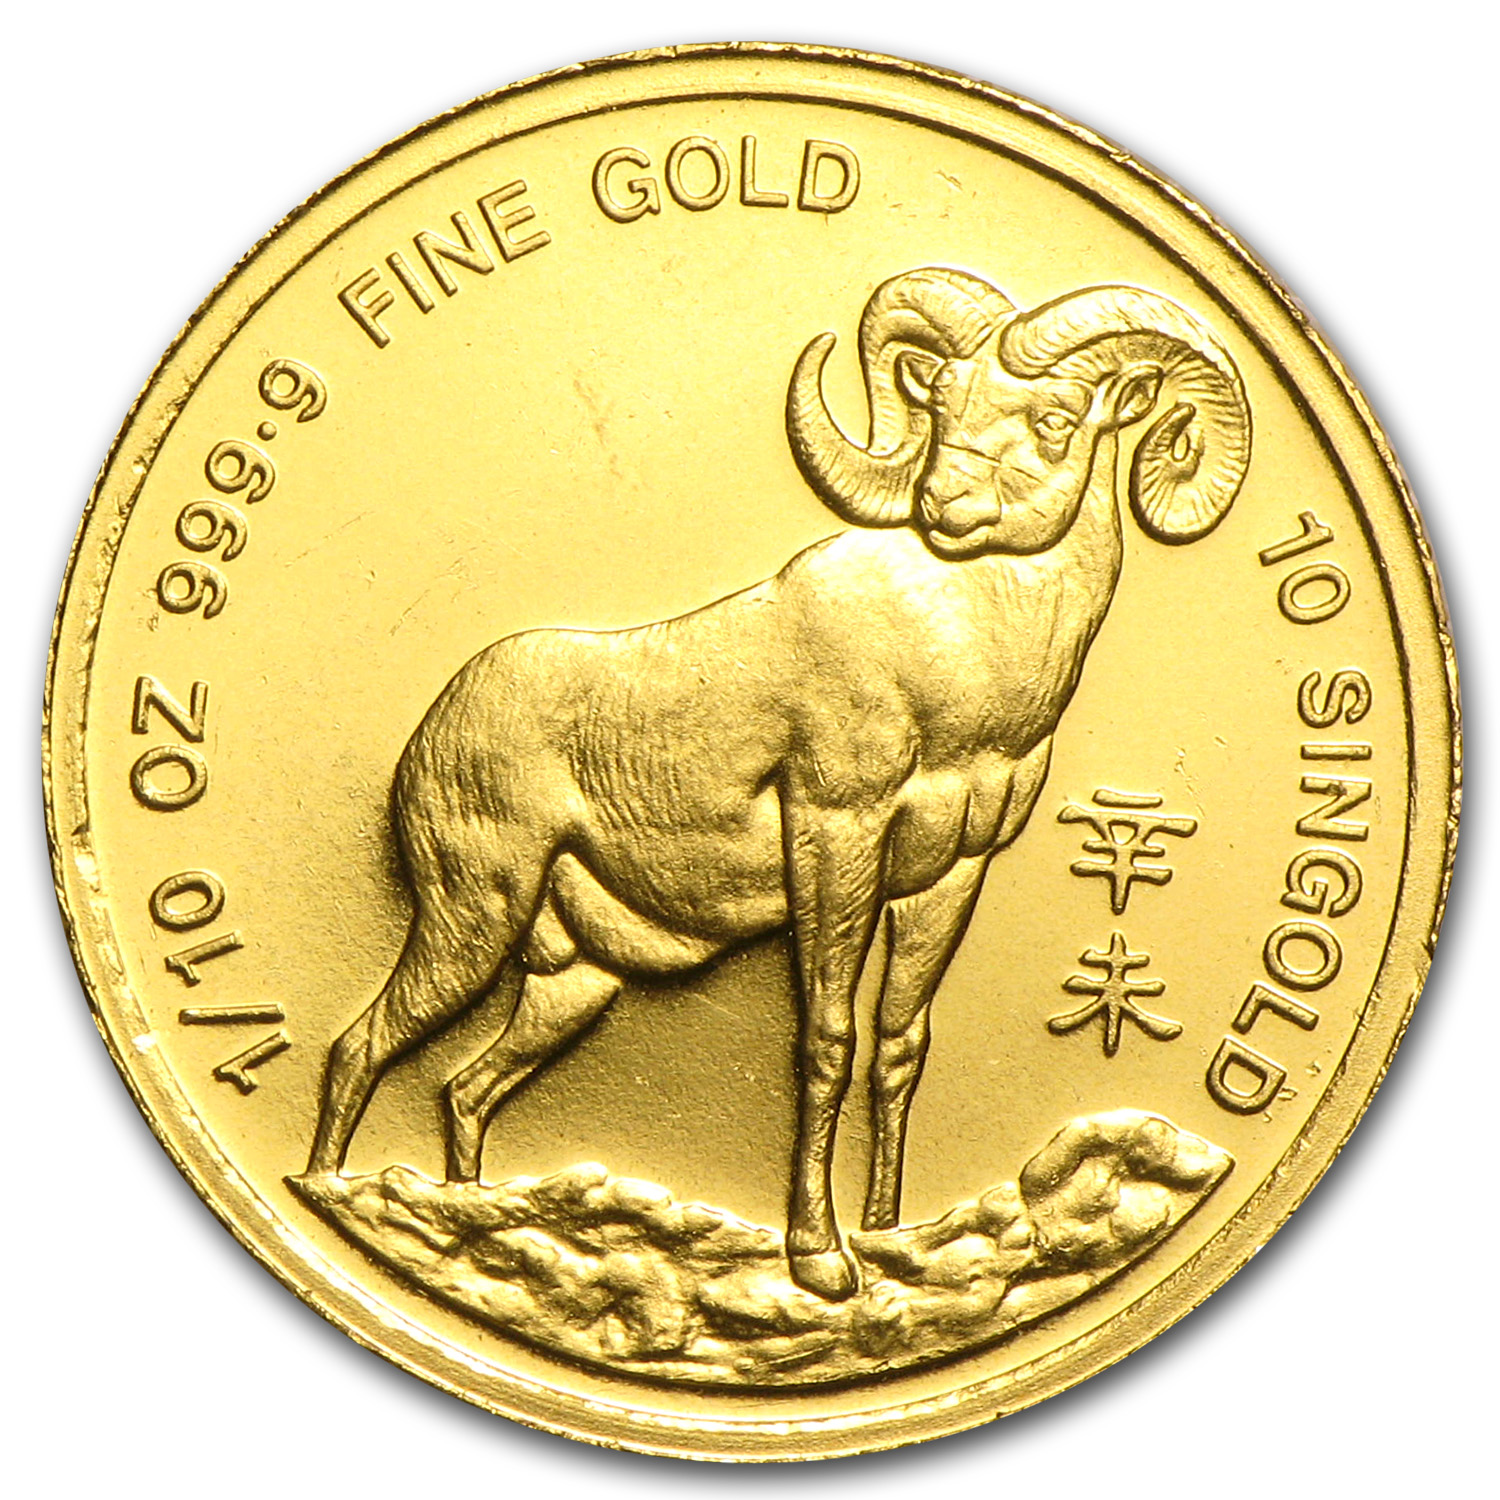 1991 Singapore 1/10 oz Proof Gold 10 Singold Ram